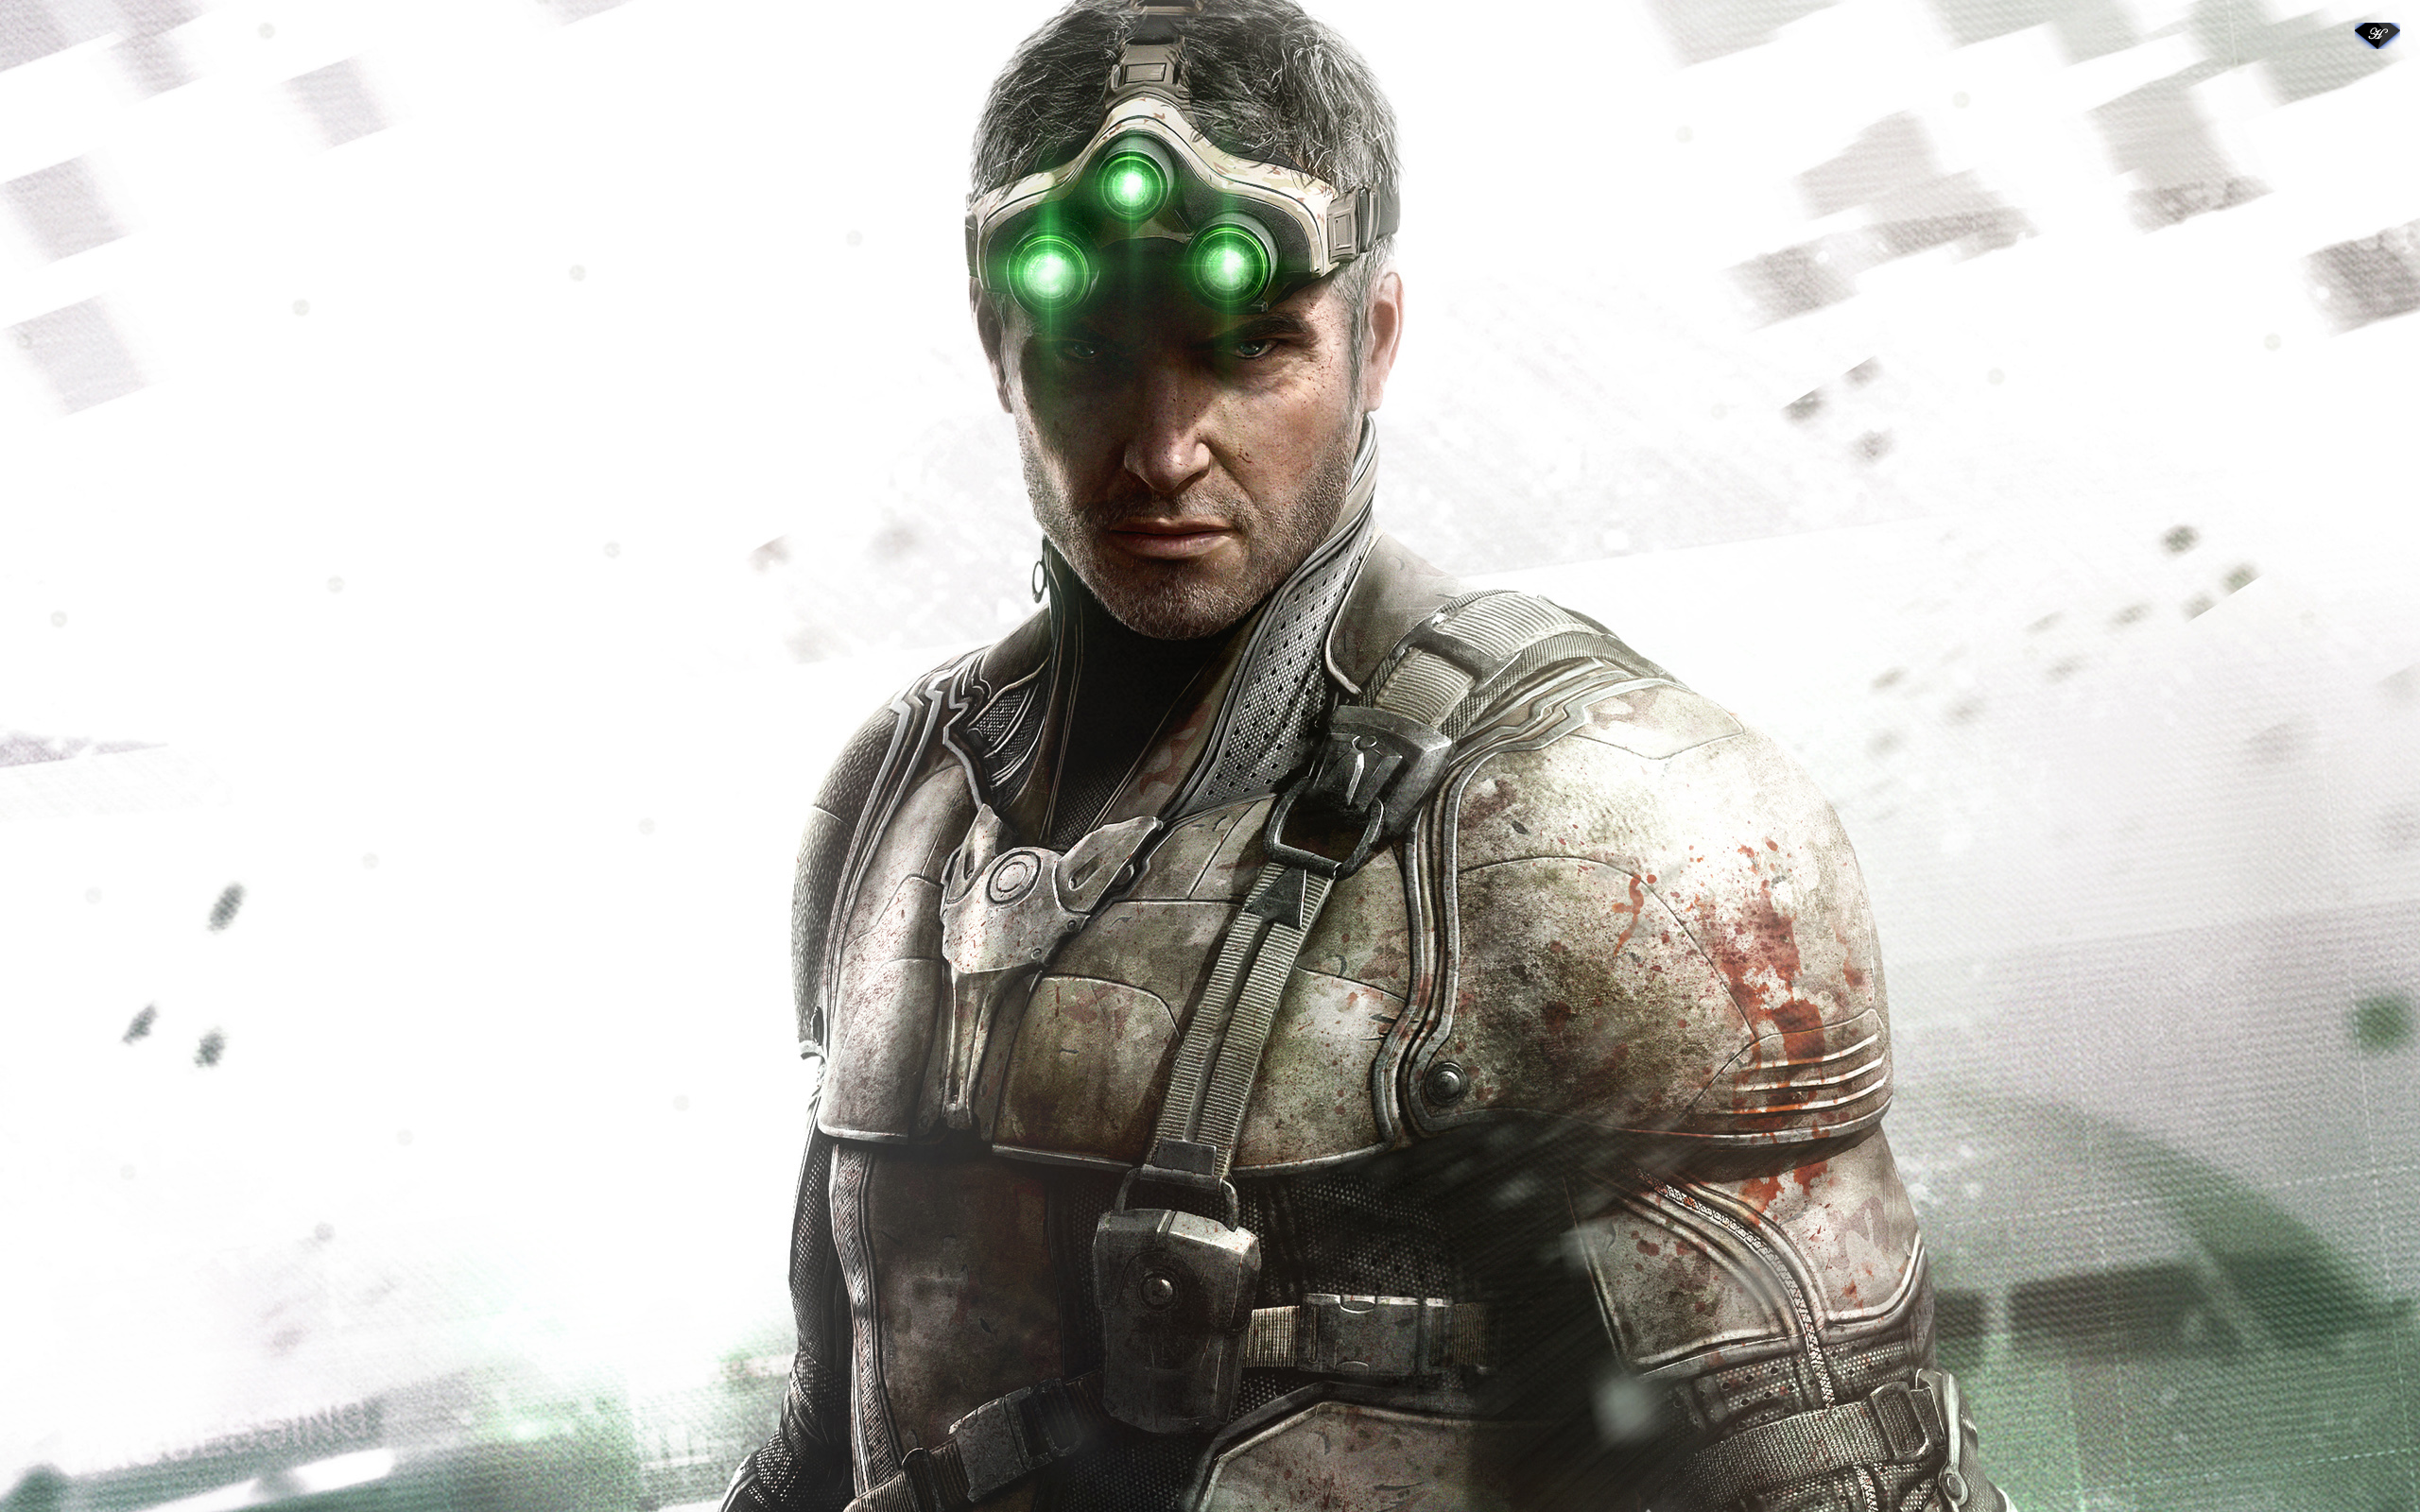 Sam Fisher is Back! Splinter Cell: Blacklist is Now Available